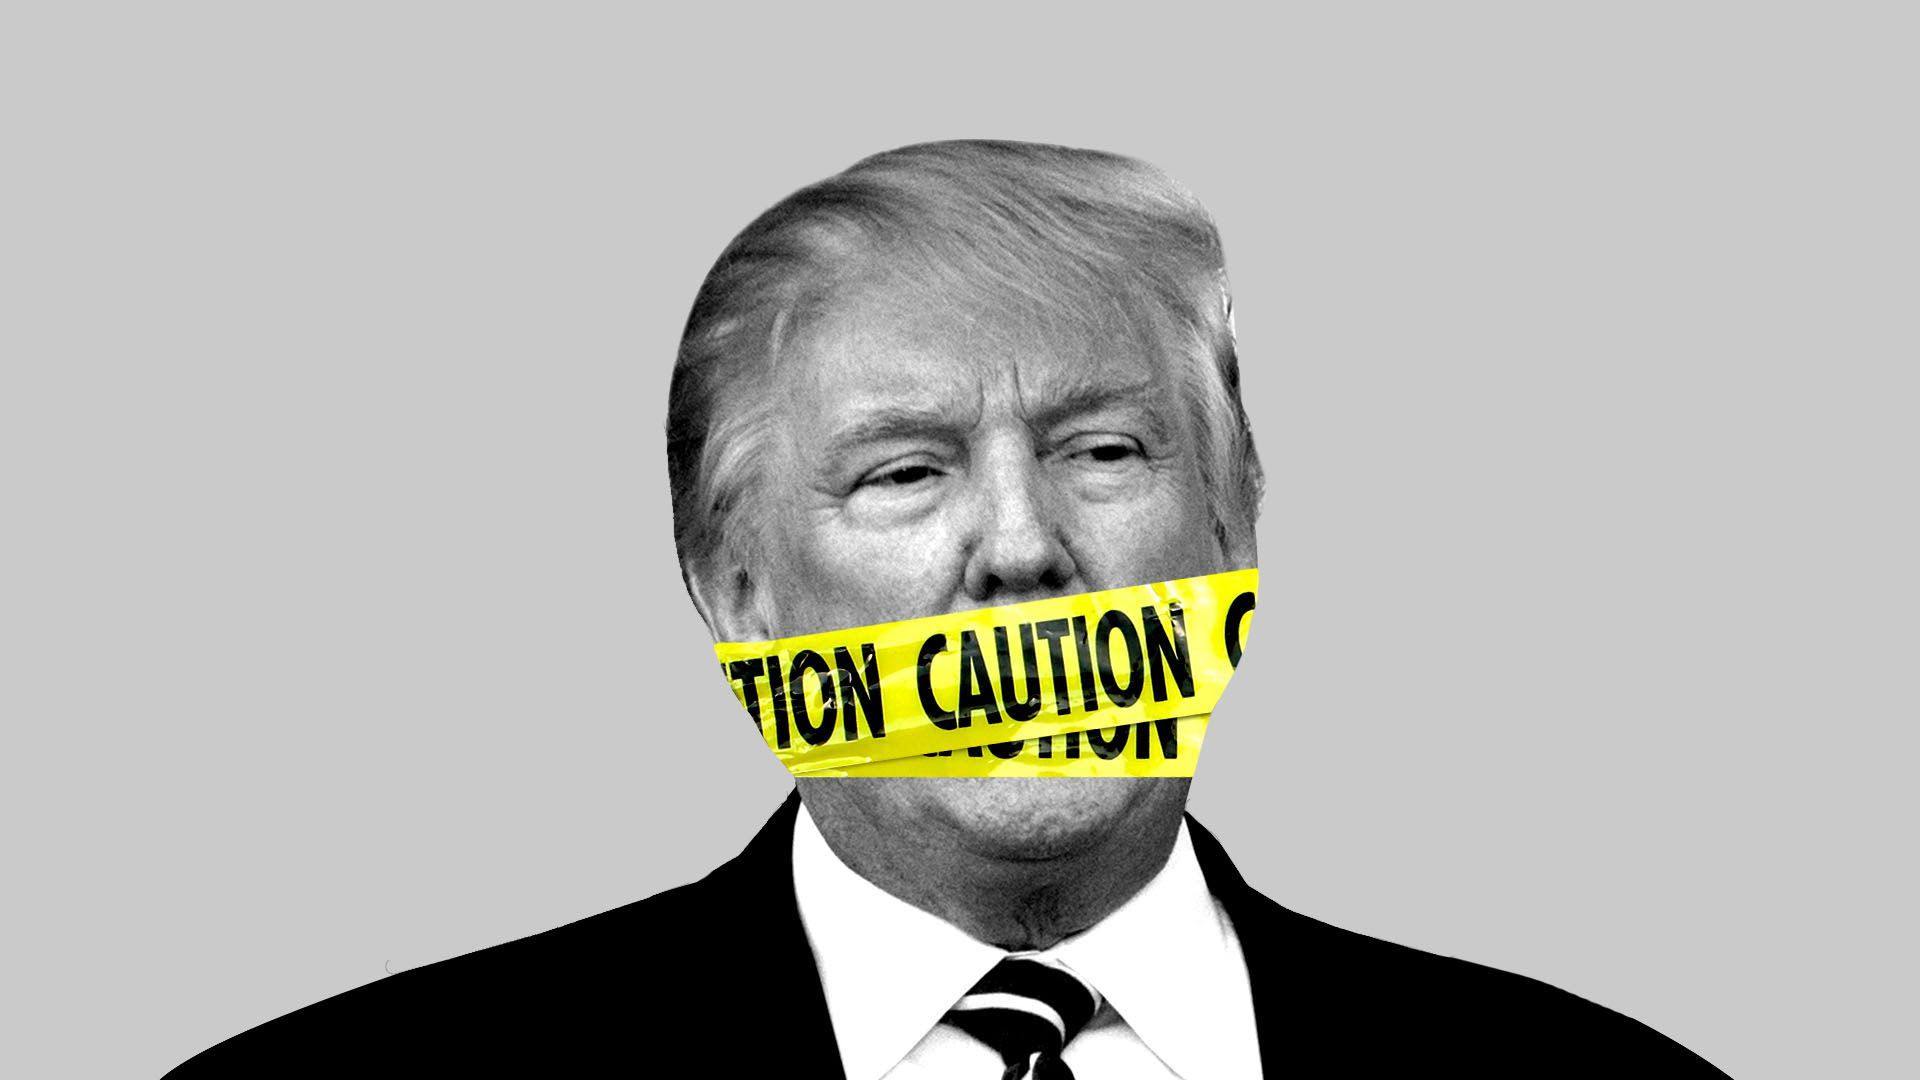 An illustration of caution tape over president Trump's mouth